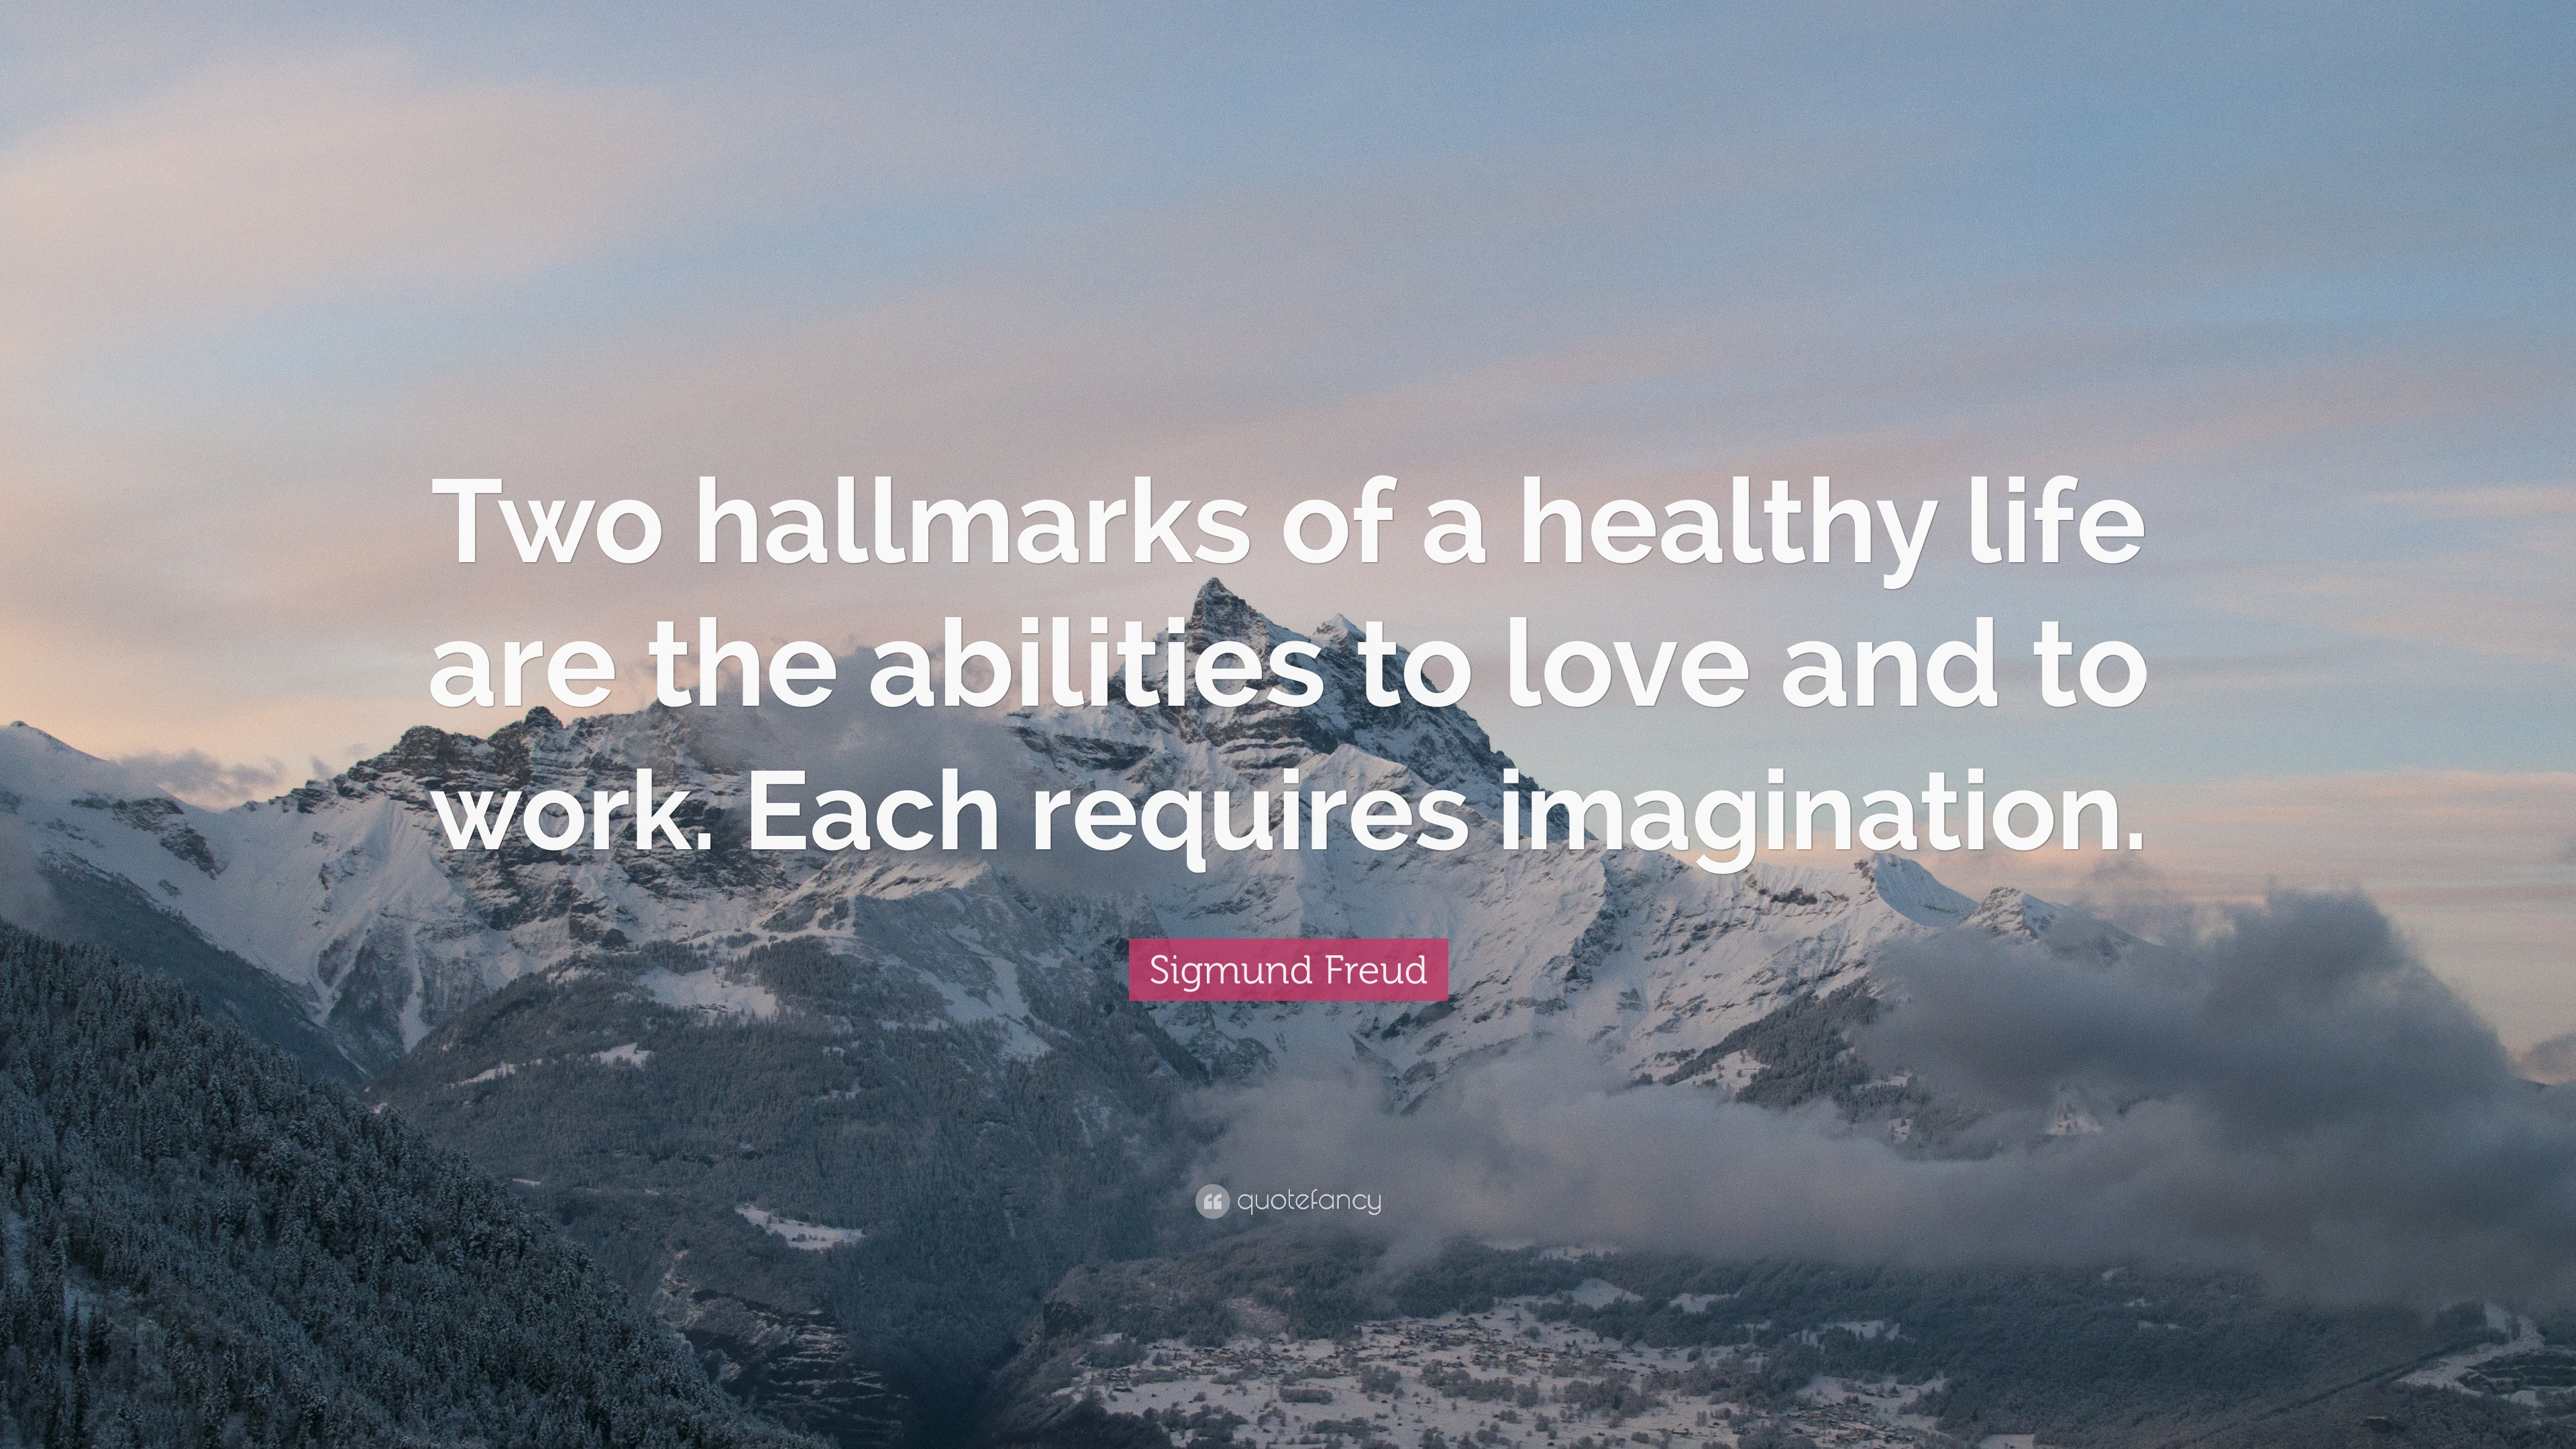 sigmund freud quote two hallmarks of a healthy life are the sigmund freud quote two hallmarks of a healthy life are the abilities to love